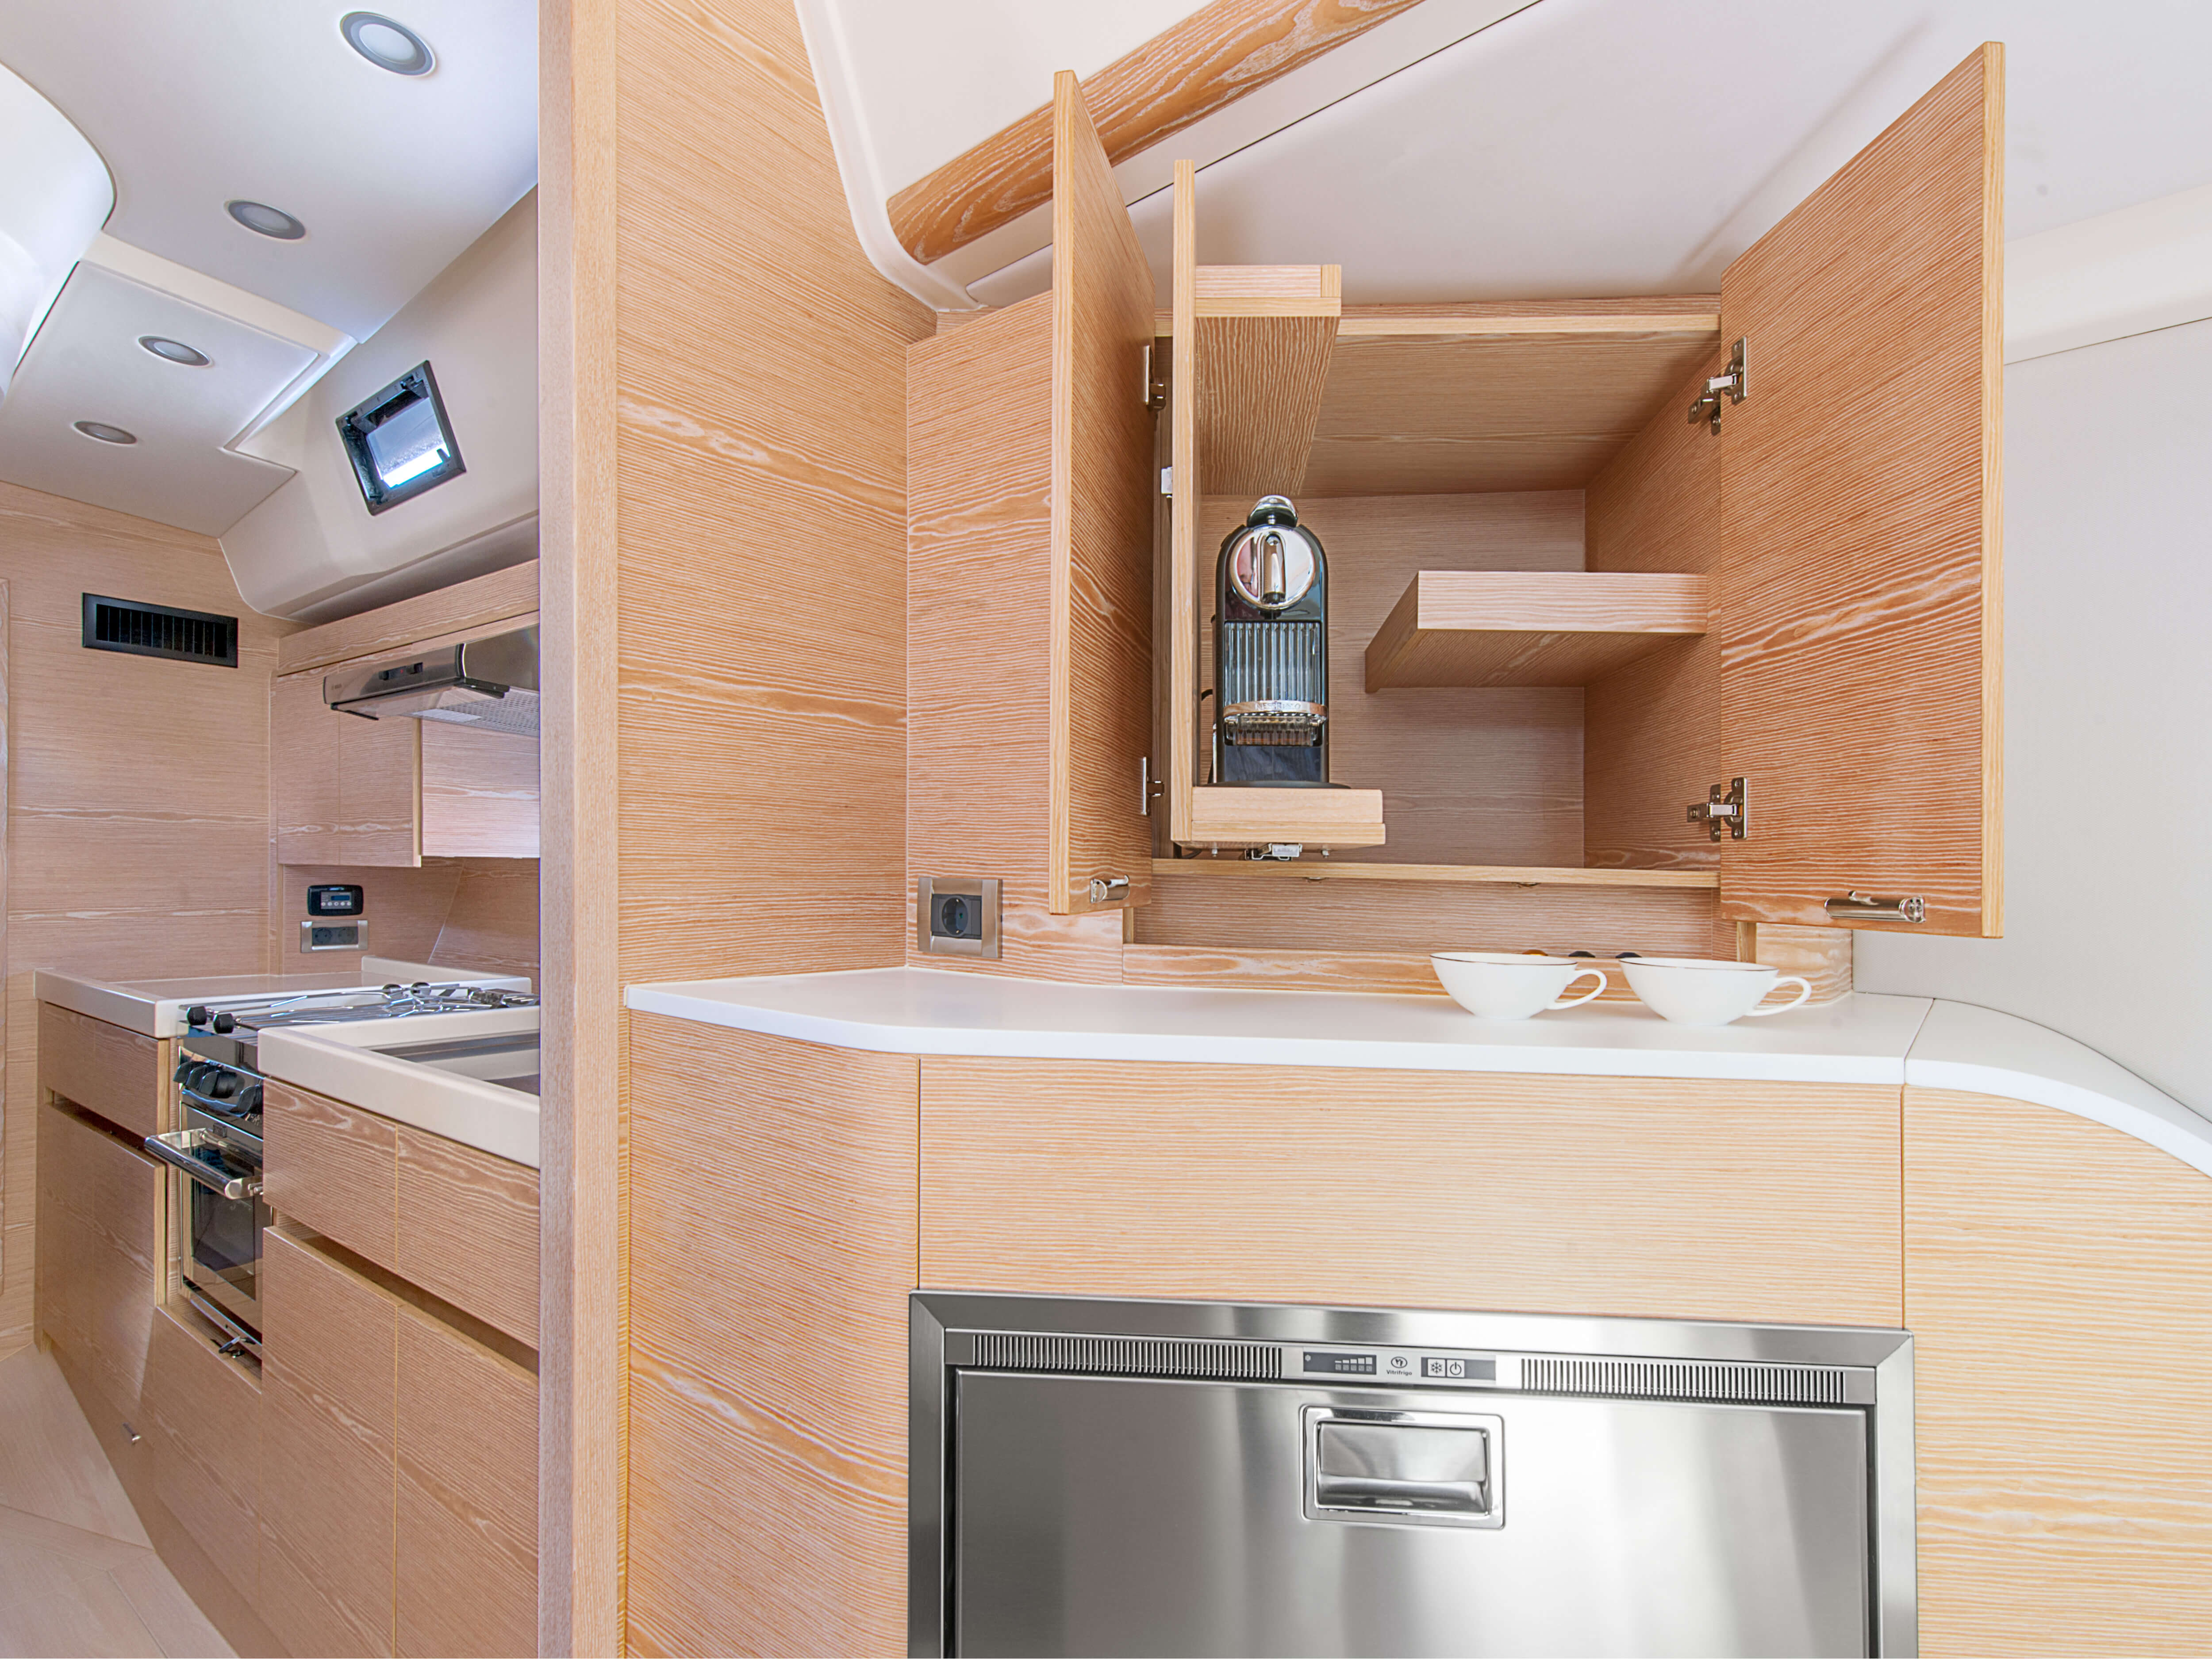 Hanse 675 | storage compartment, deposit areas, fridge | Hanse